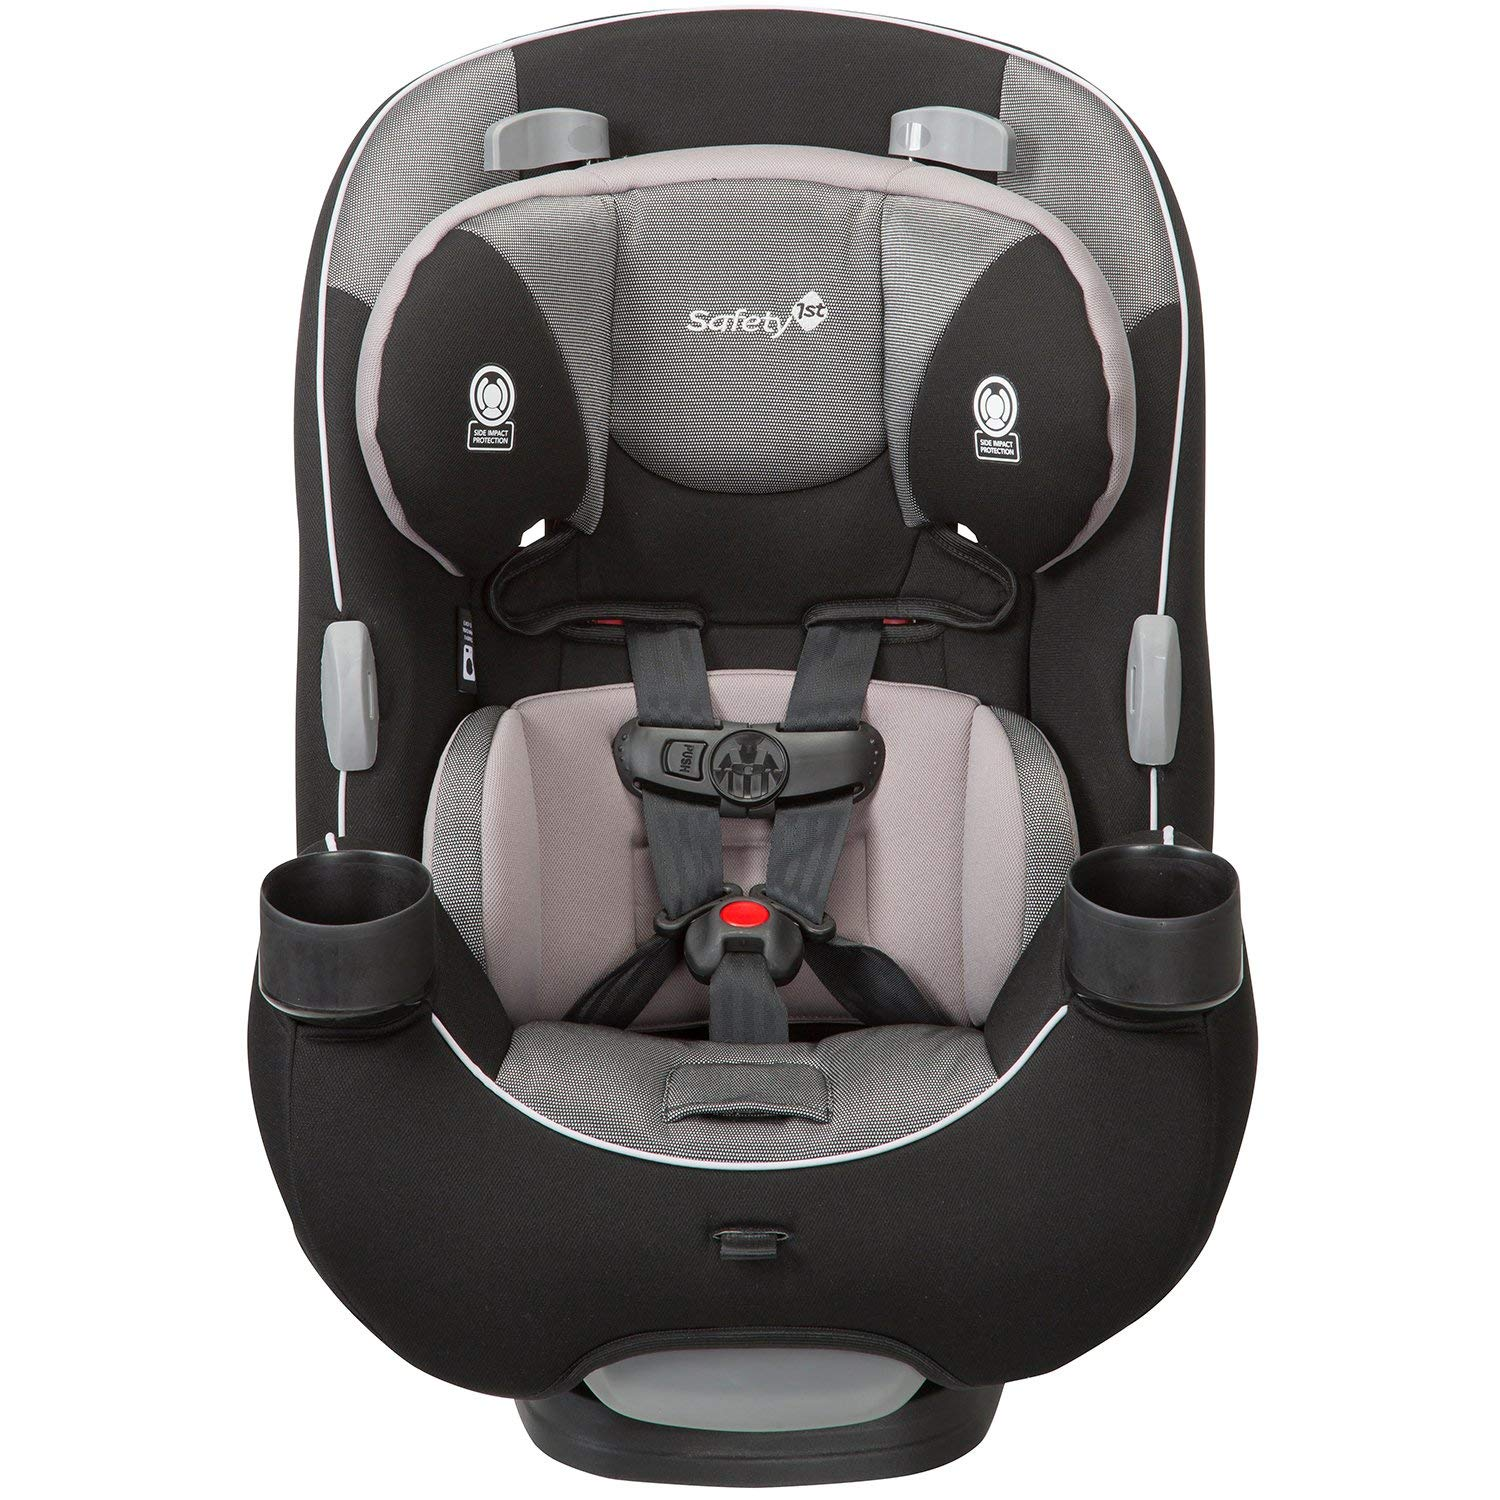 Amazon.com : Safety 1st Ever-Fit 3-in-1 Convertible